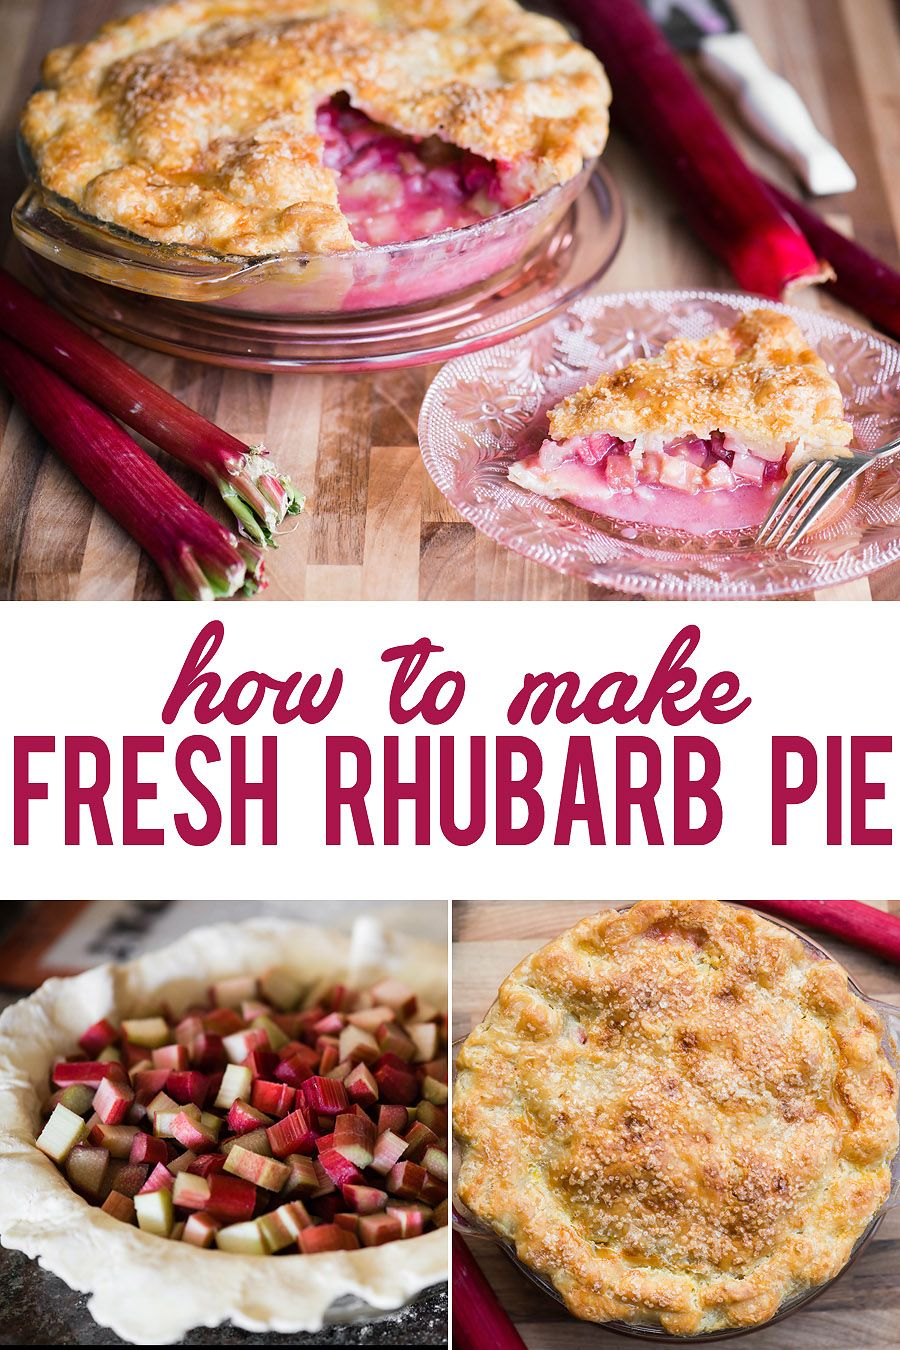 Fresh rhubarb pie, made with homemade butter pie crusts and fresh bright red rhubarb, is the best sweet and tart summer dessert! rhubarbpie rhubarb pie fresh recipe easy best filling oldfashi is part of Rhubarb recipes pie -